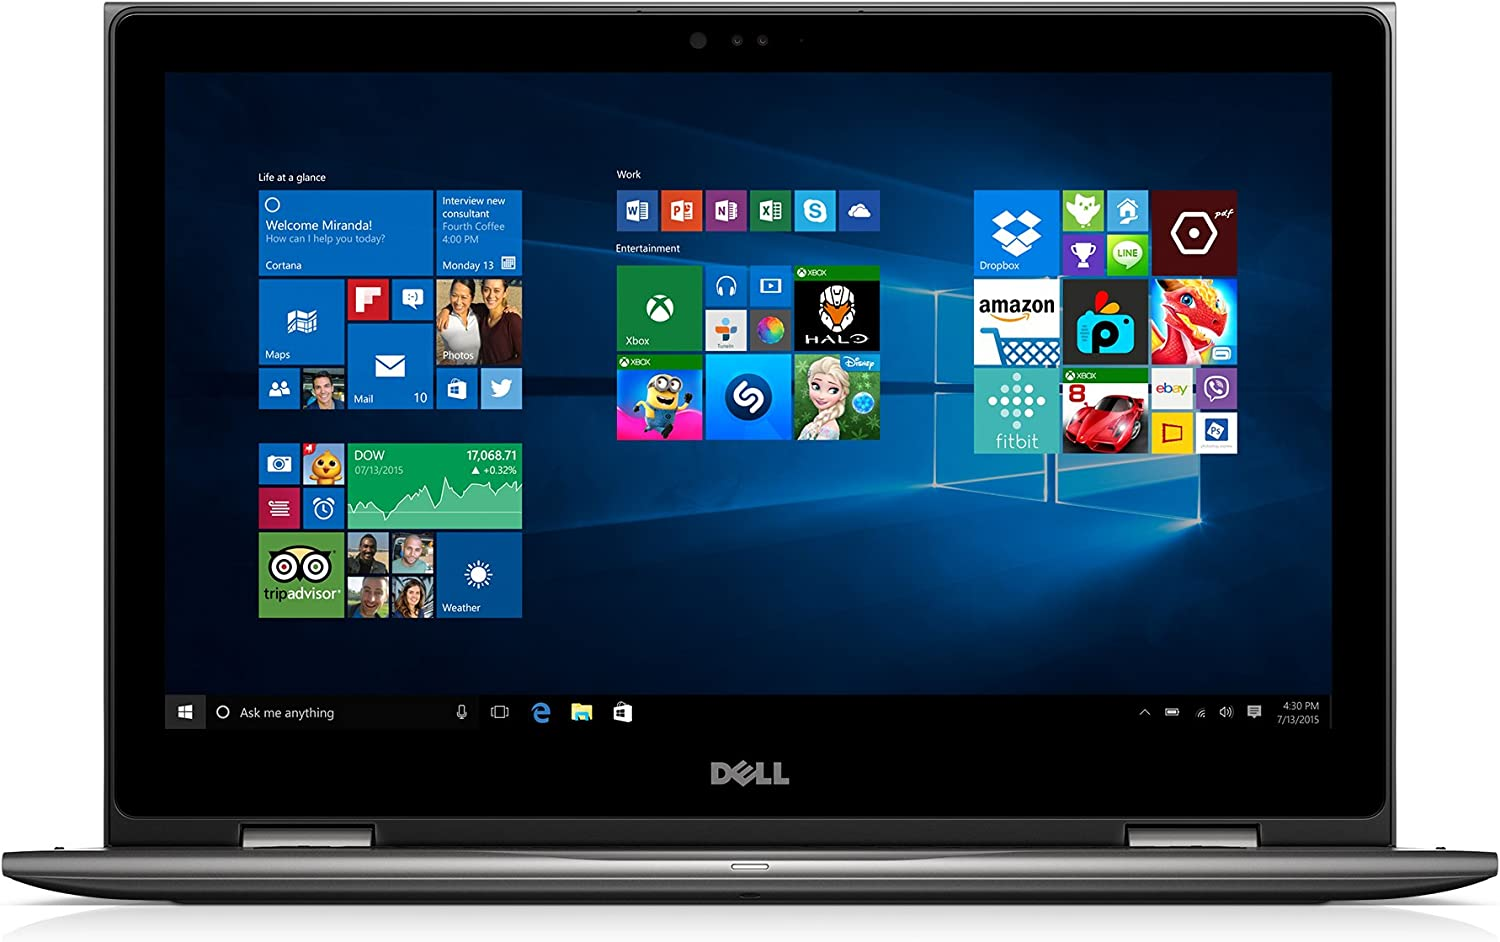 "Dell Inspiron 15 2-in-1 Laptop Intel Core i3 (up to 2.40 GHz), 4GB Ram, 500GB HDD, 15.6"" Screen, Gray (i5578-3093GRY-PUS)"